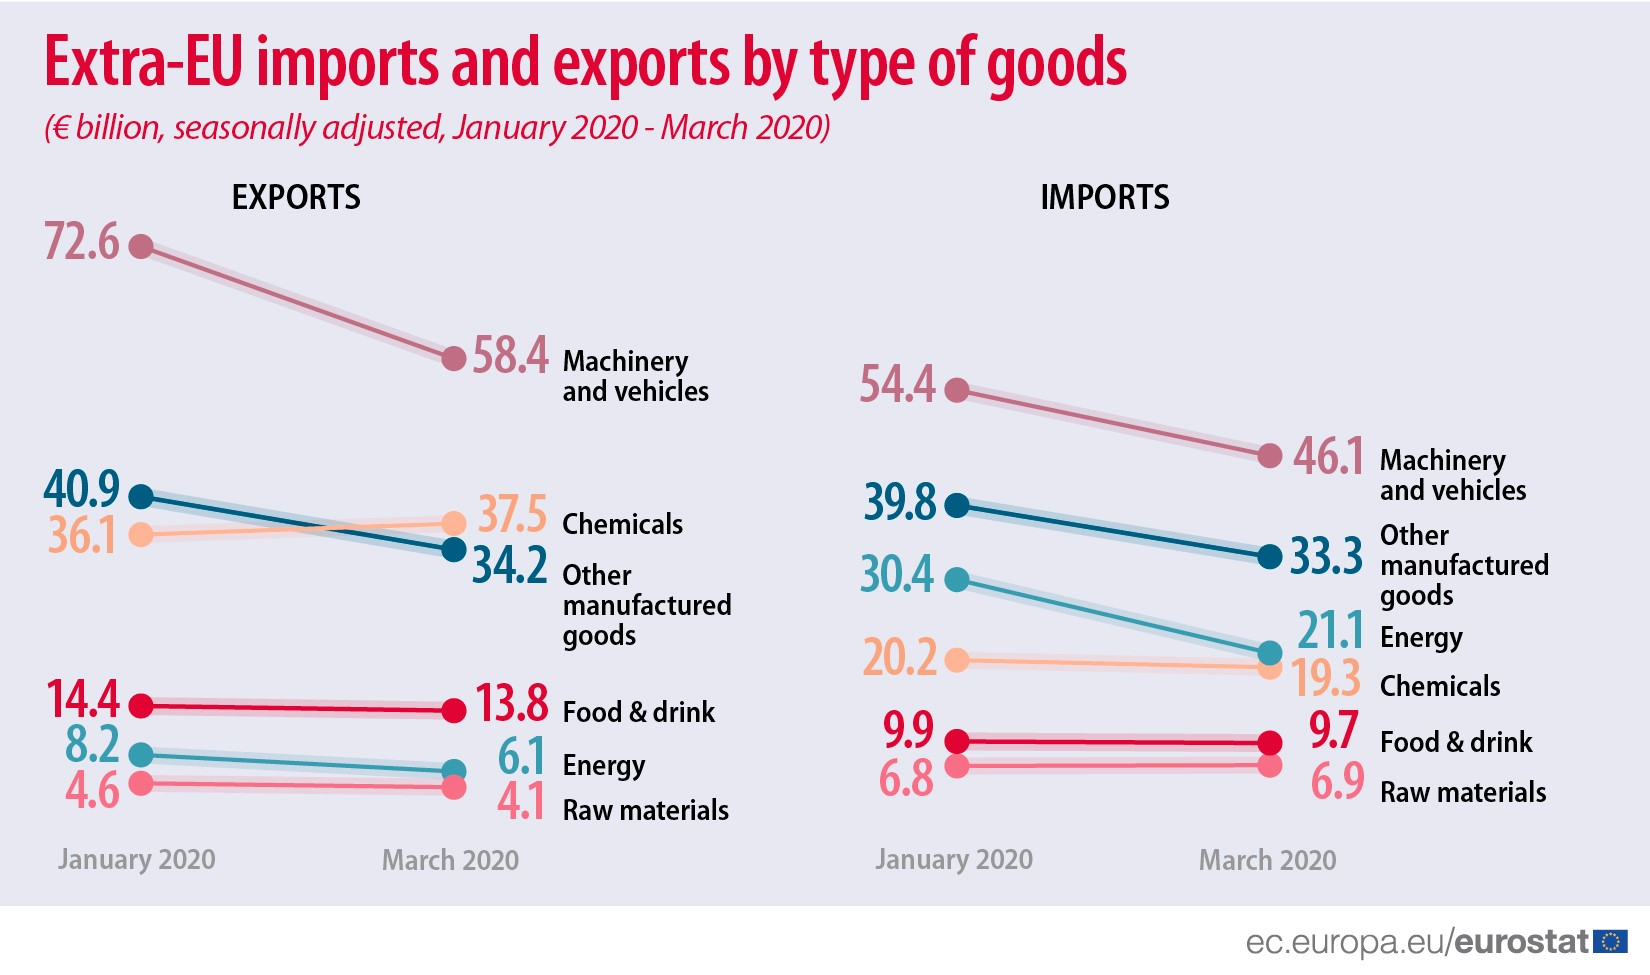 Extra-EU imports and exports by type of goods (eur billion, seasonally adjusted, January 2020 - March 2020)